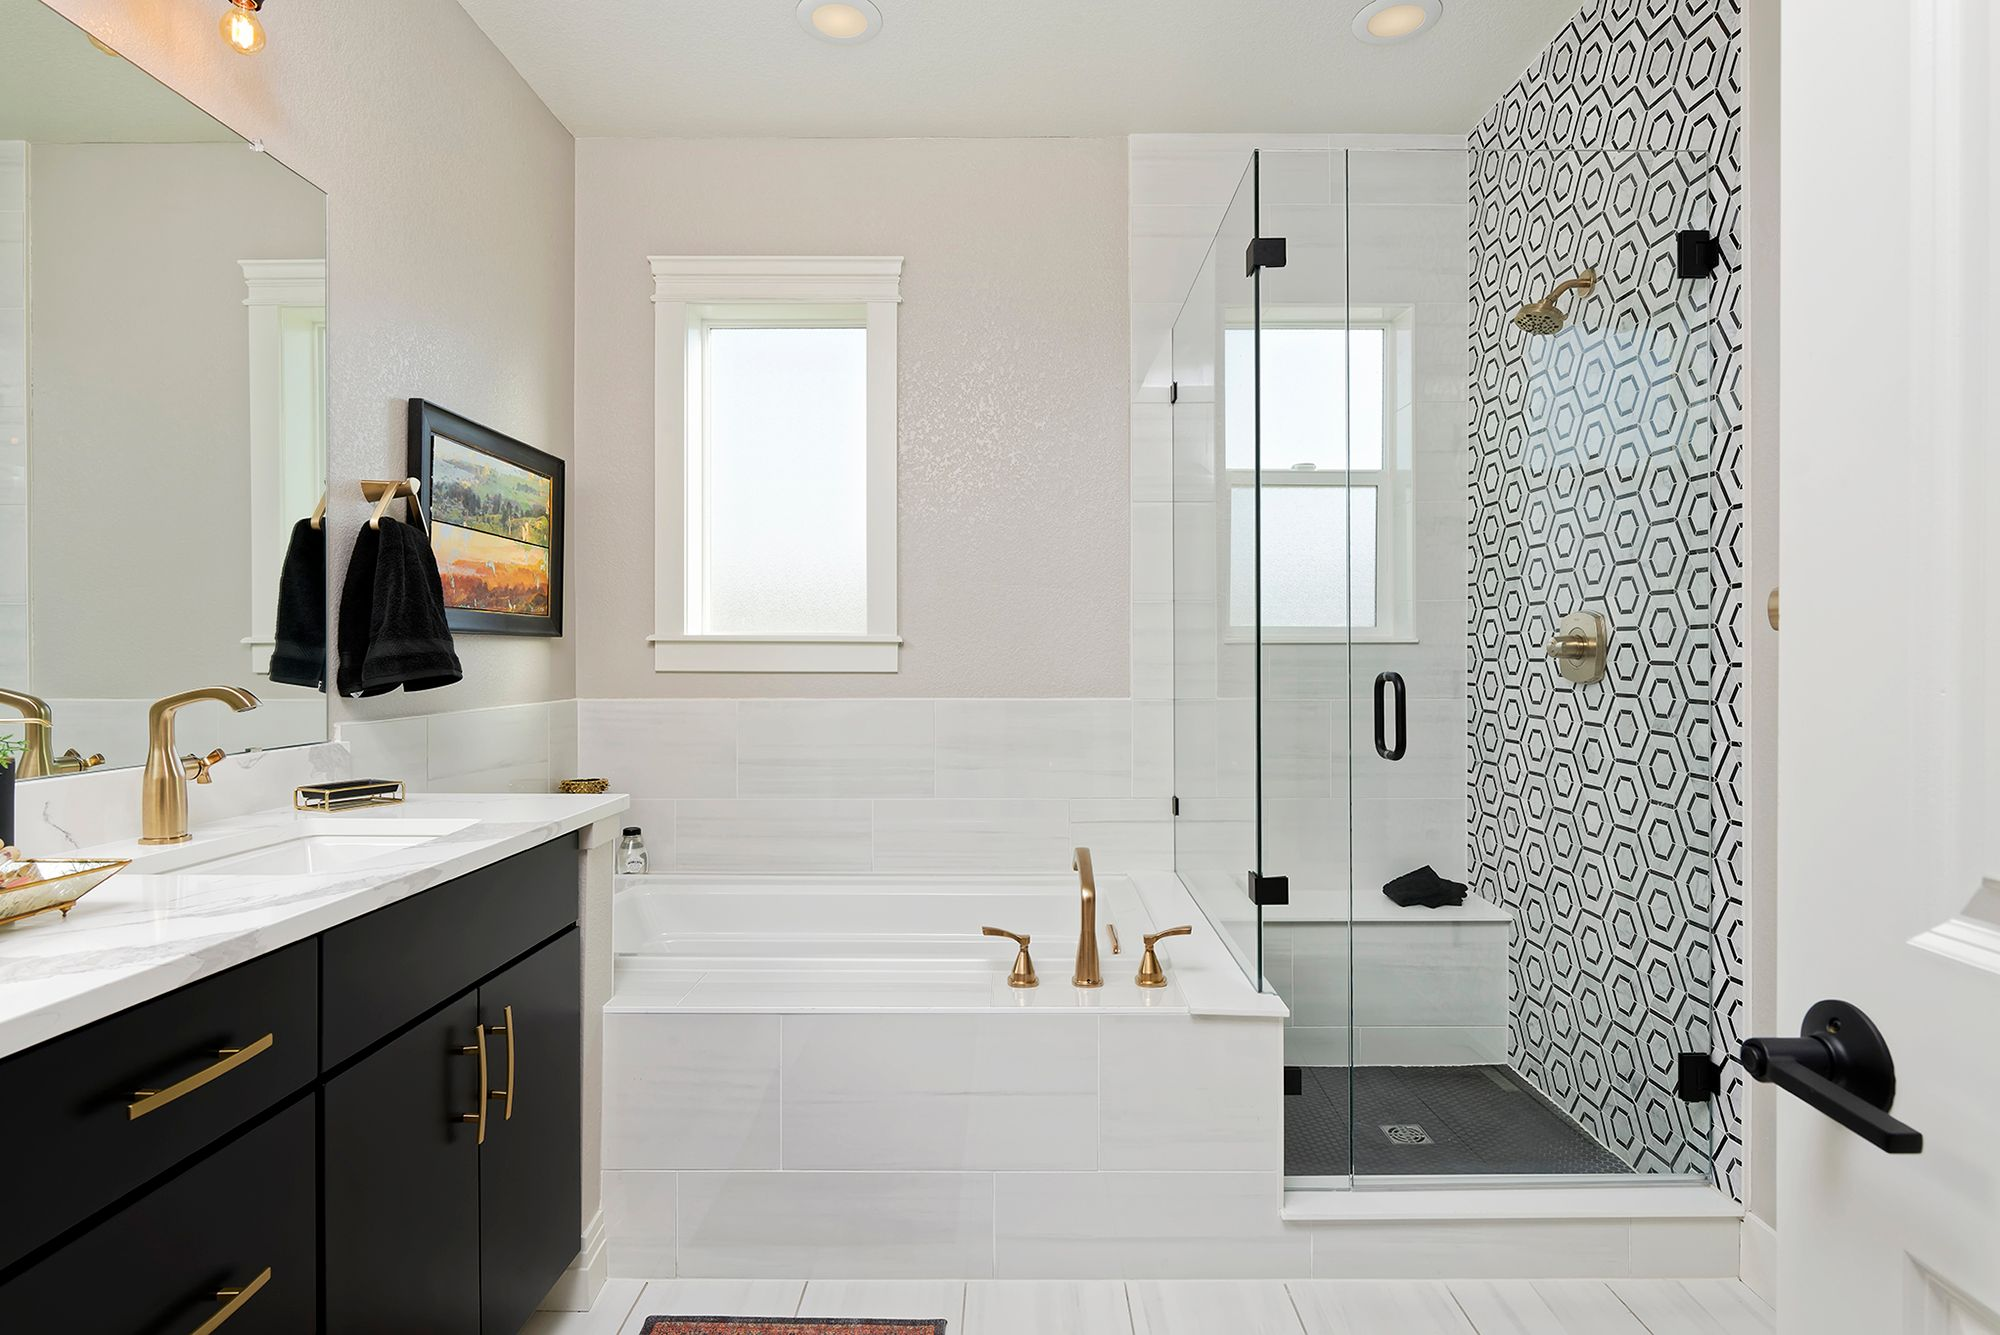 Bathroom featured in the Insight By Thrive Home Builders in Boulder-Longmont, CO